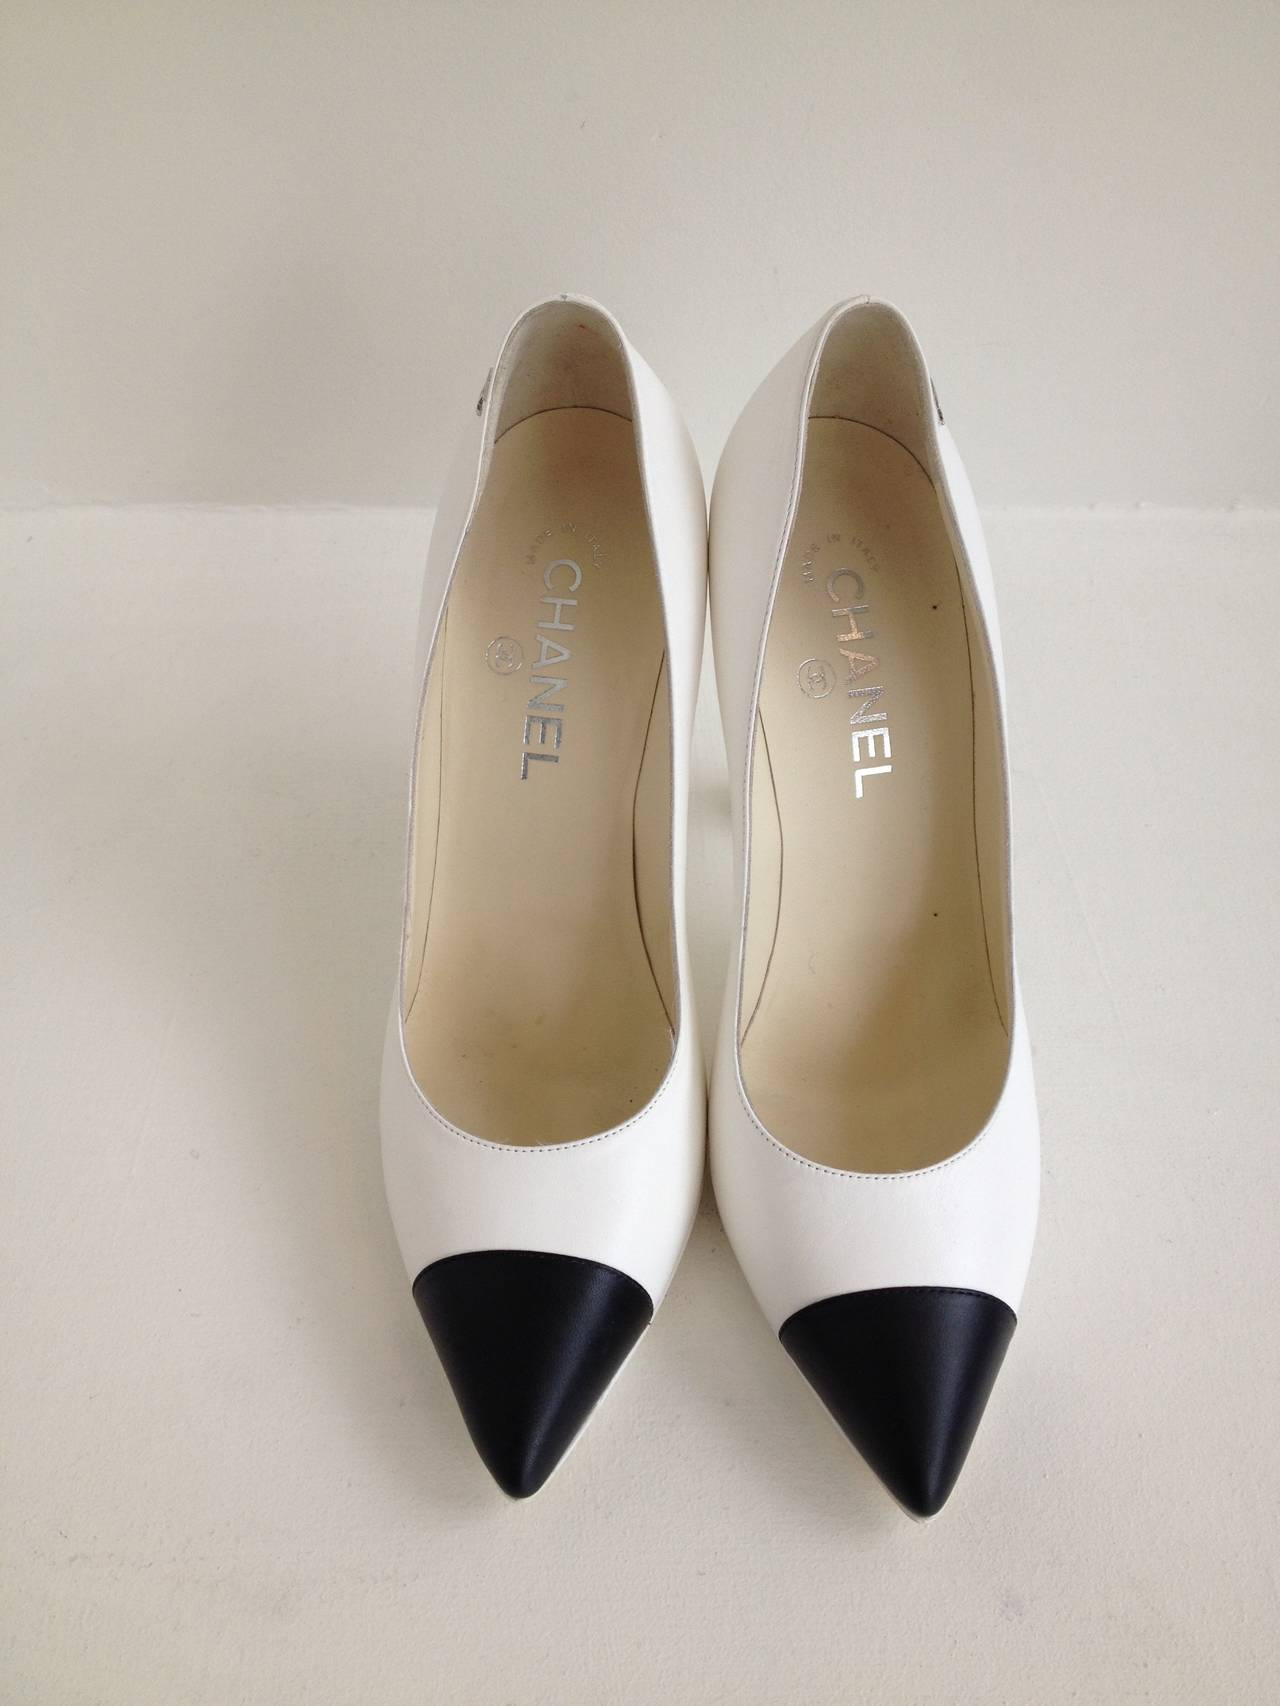 Chanel White Leather Knot Heels At 1stdibs